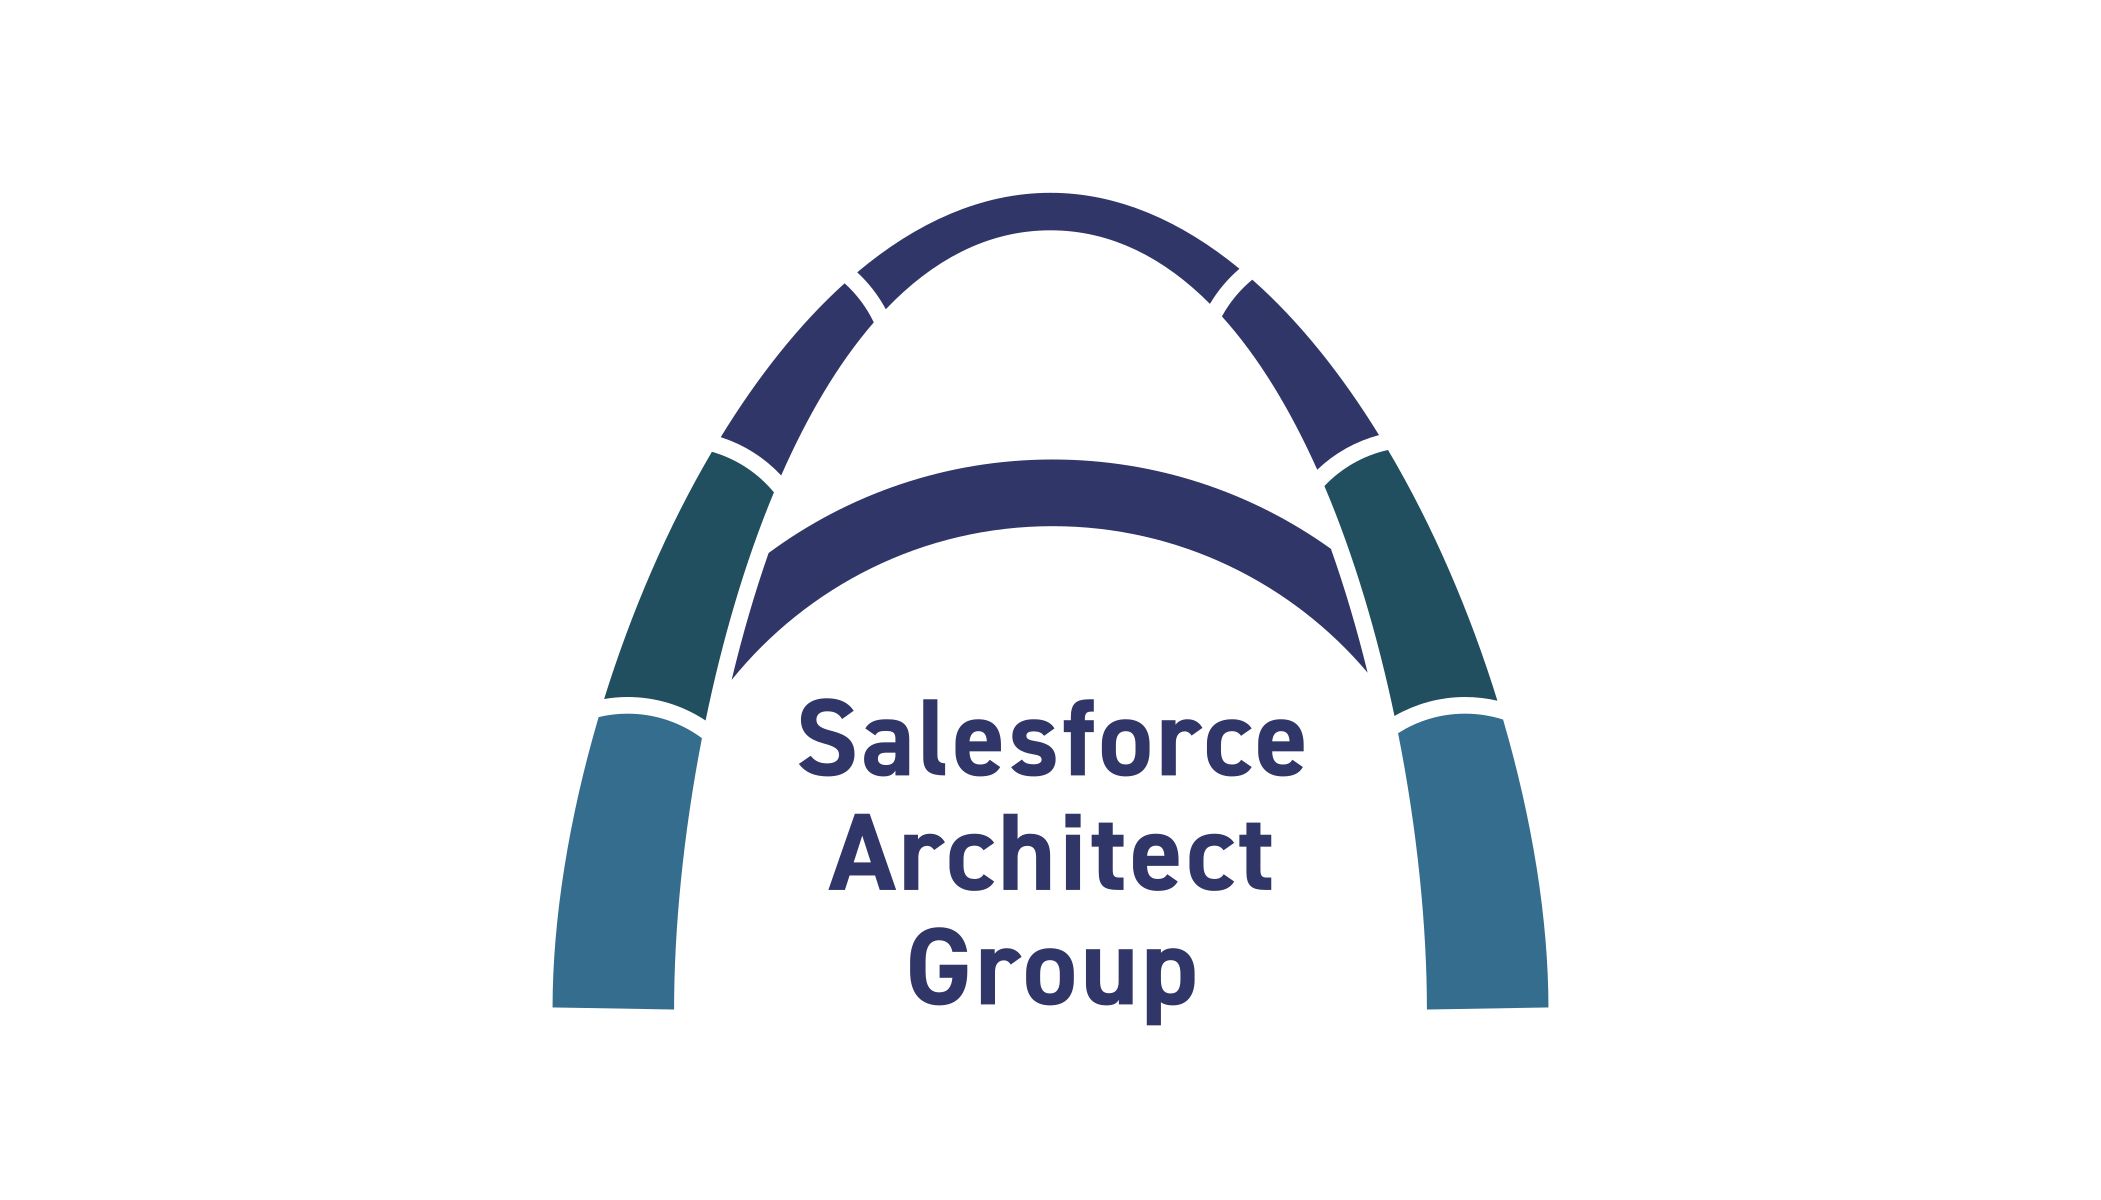 Salesforce Architect Group